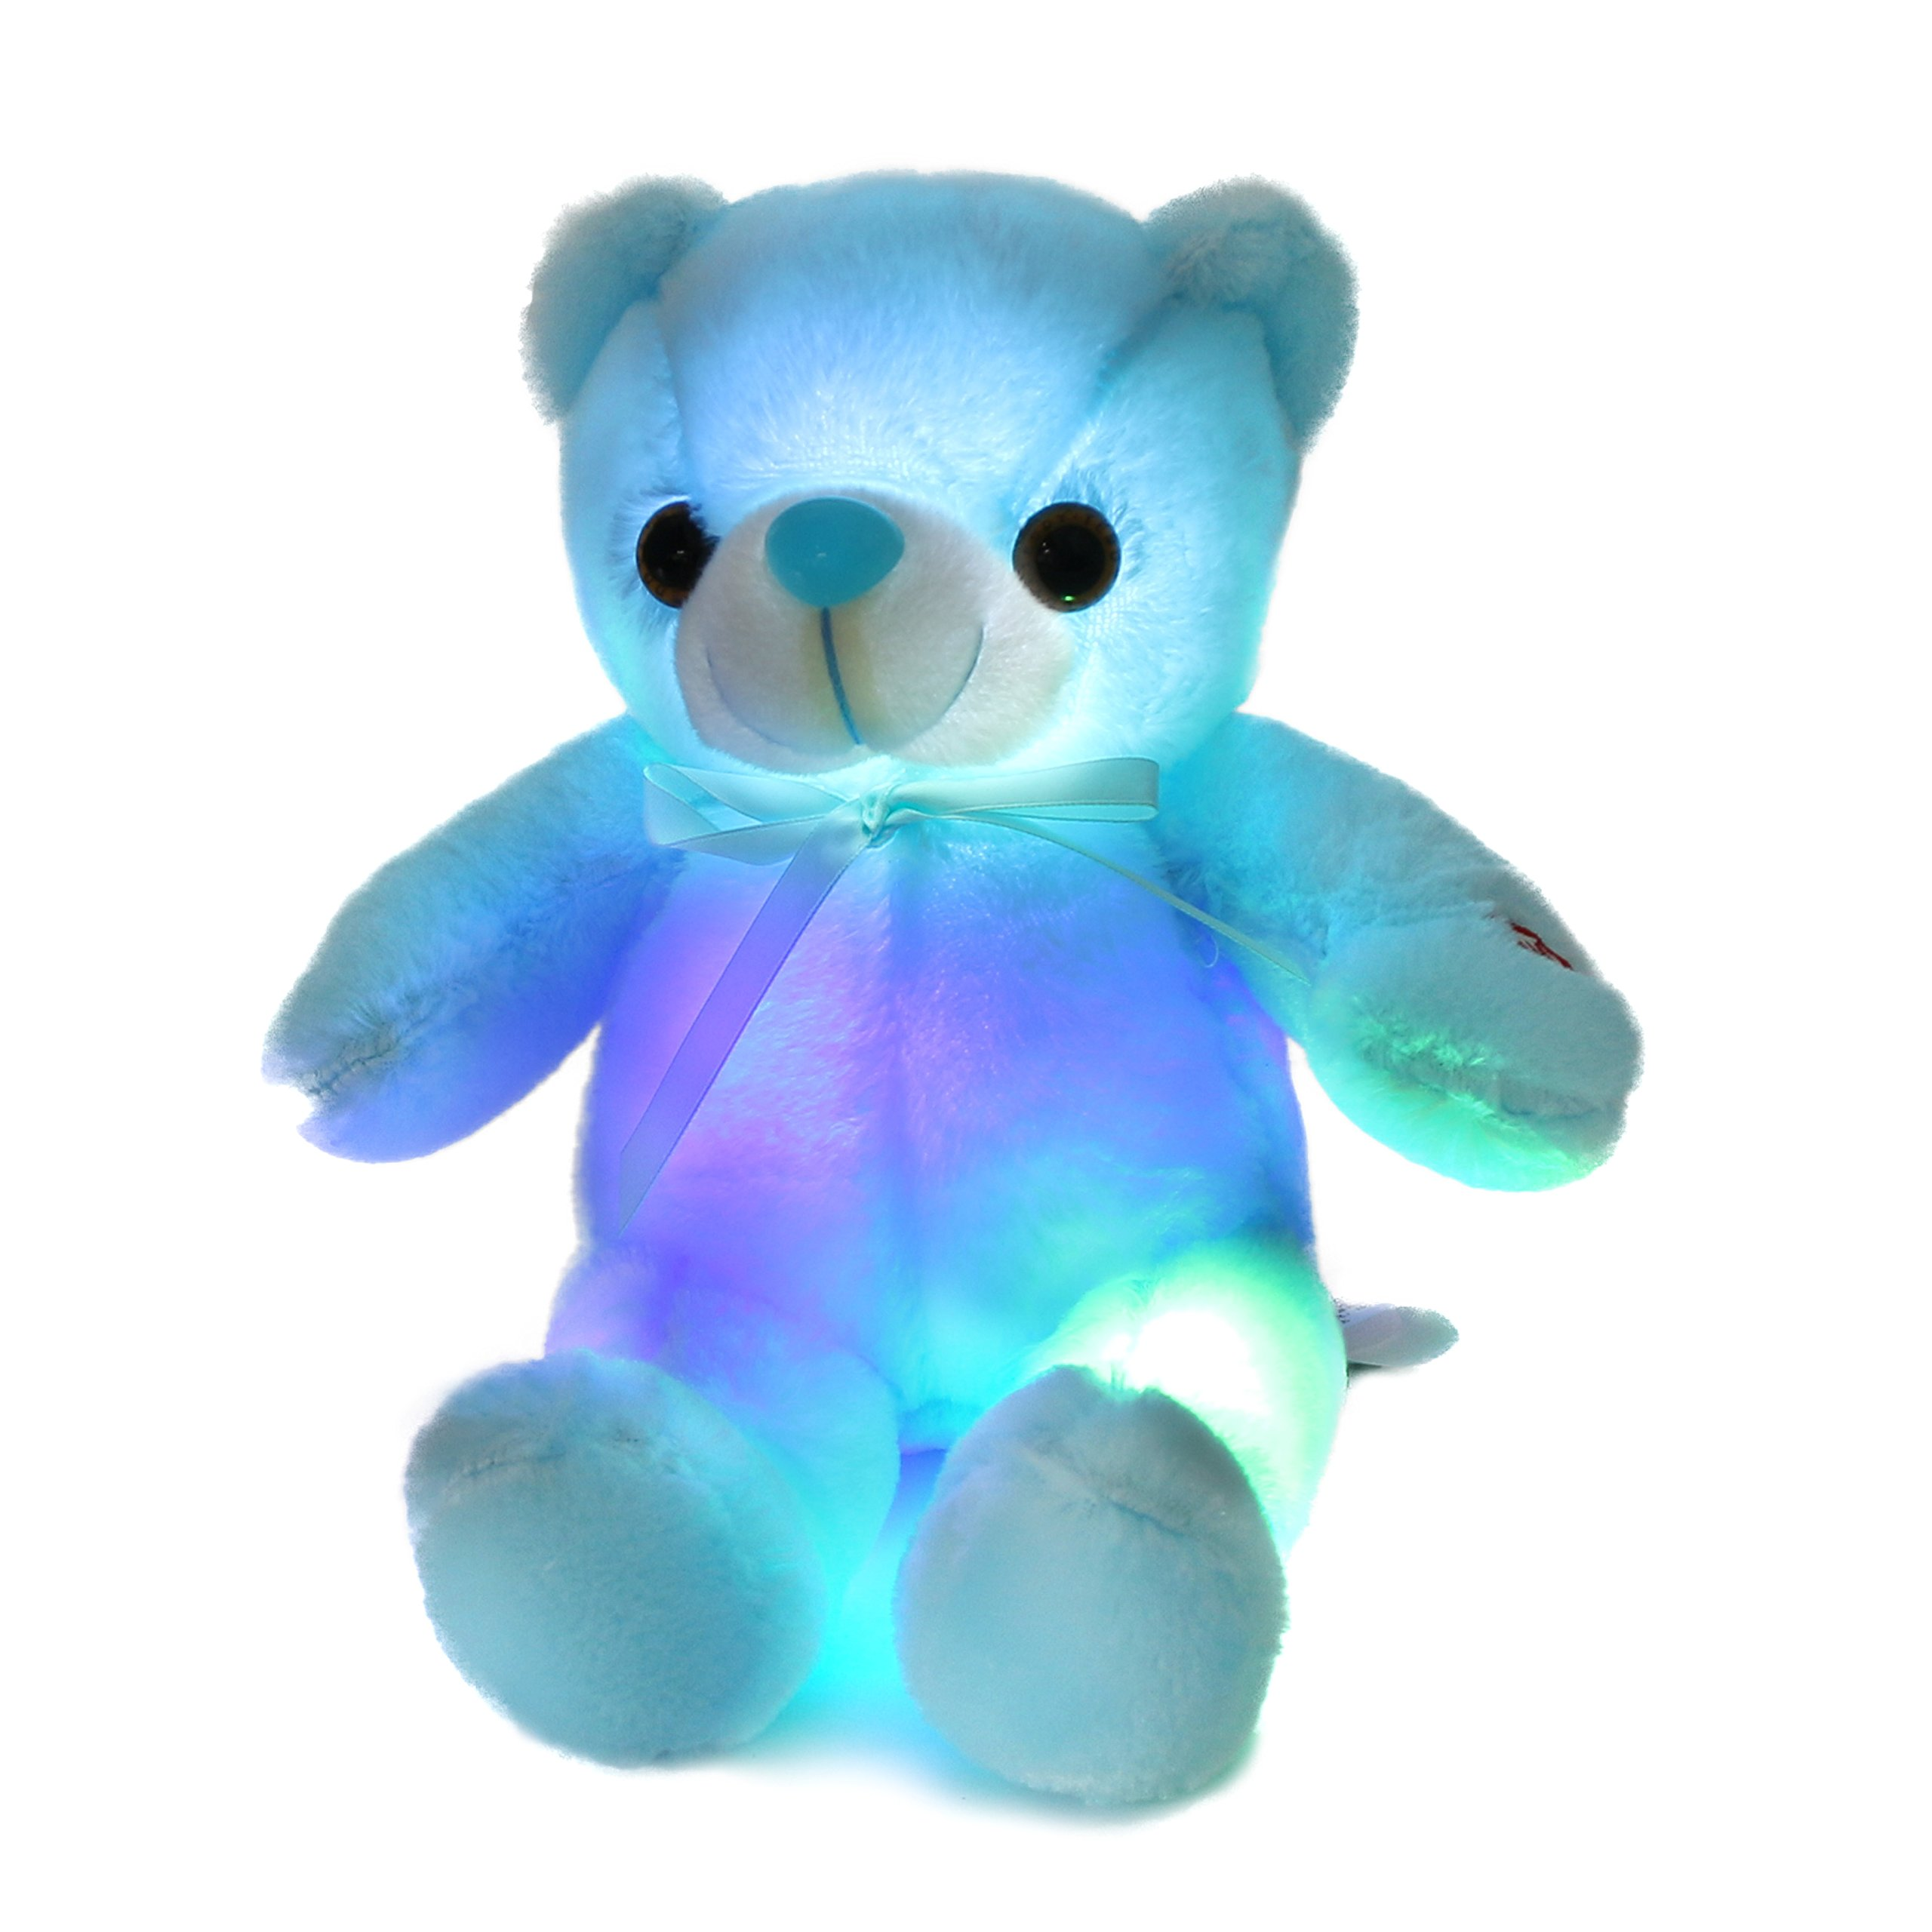 Houwsbaby Glow Teddy Bear with Bow-tie Stuffed Animal Light Up Plush Toys Gift for Kids Boys Girls Holiday Birthday, 12'' (Blue)